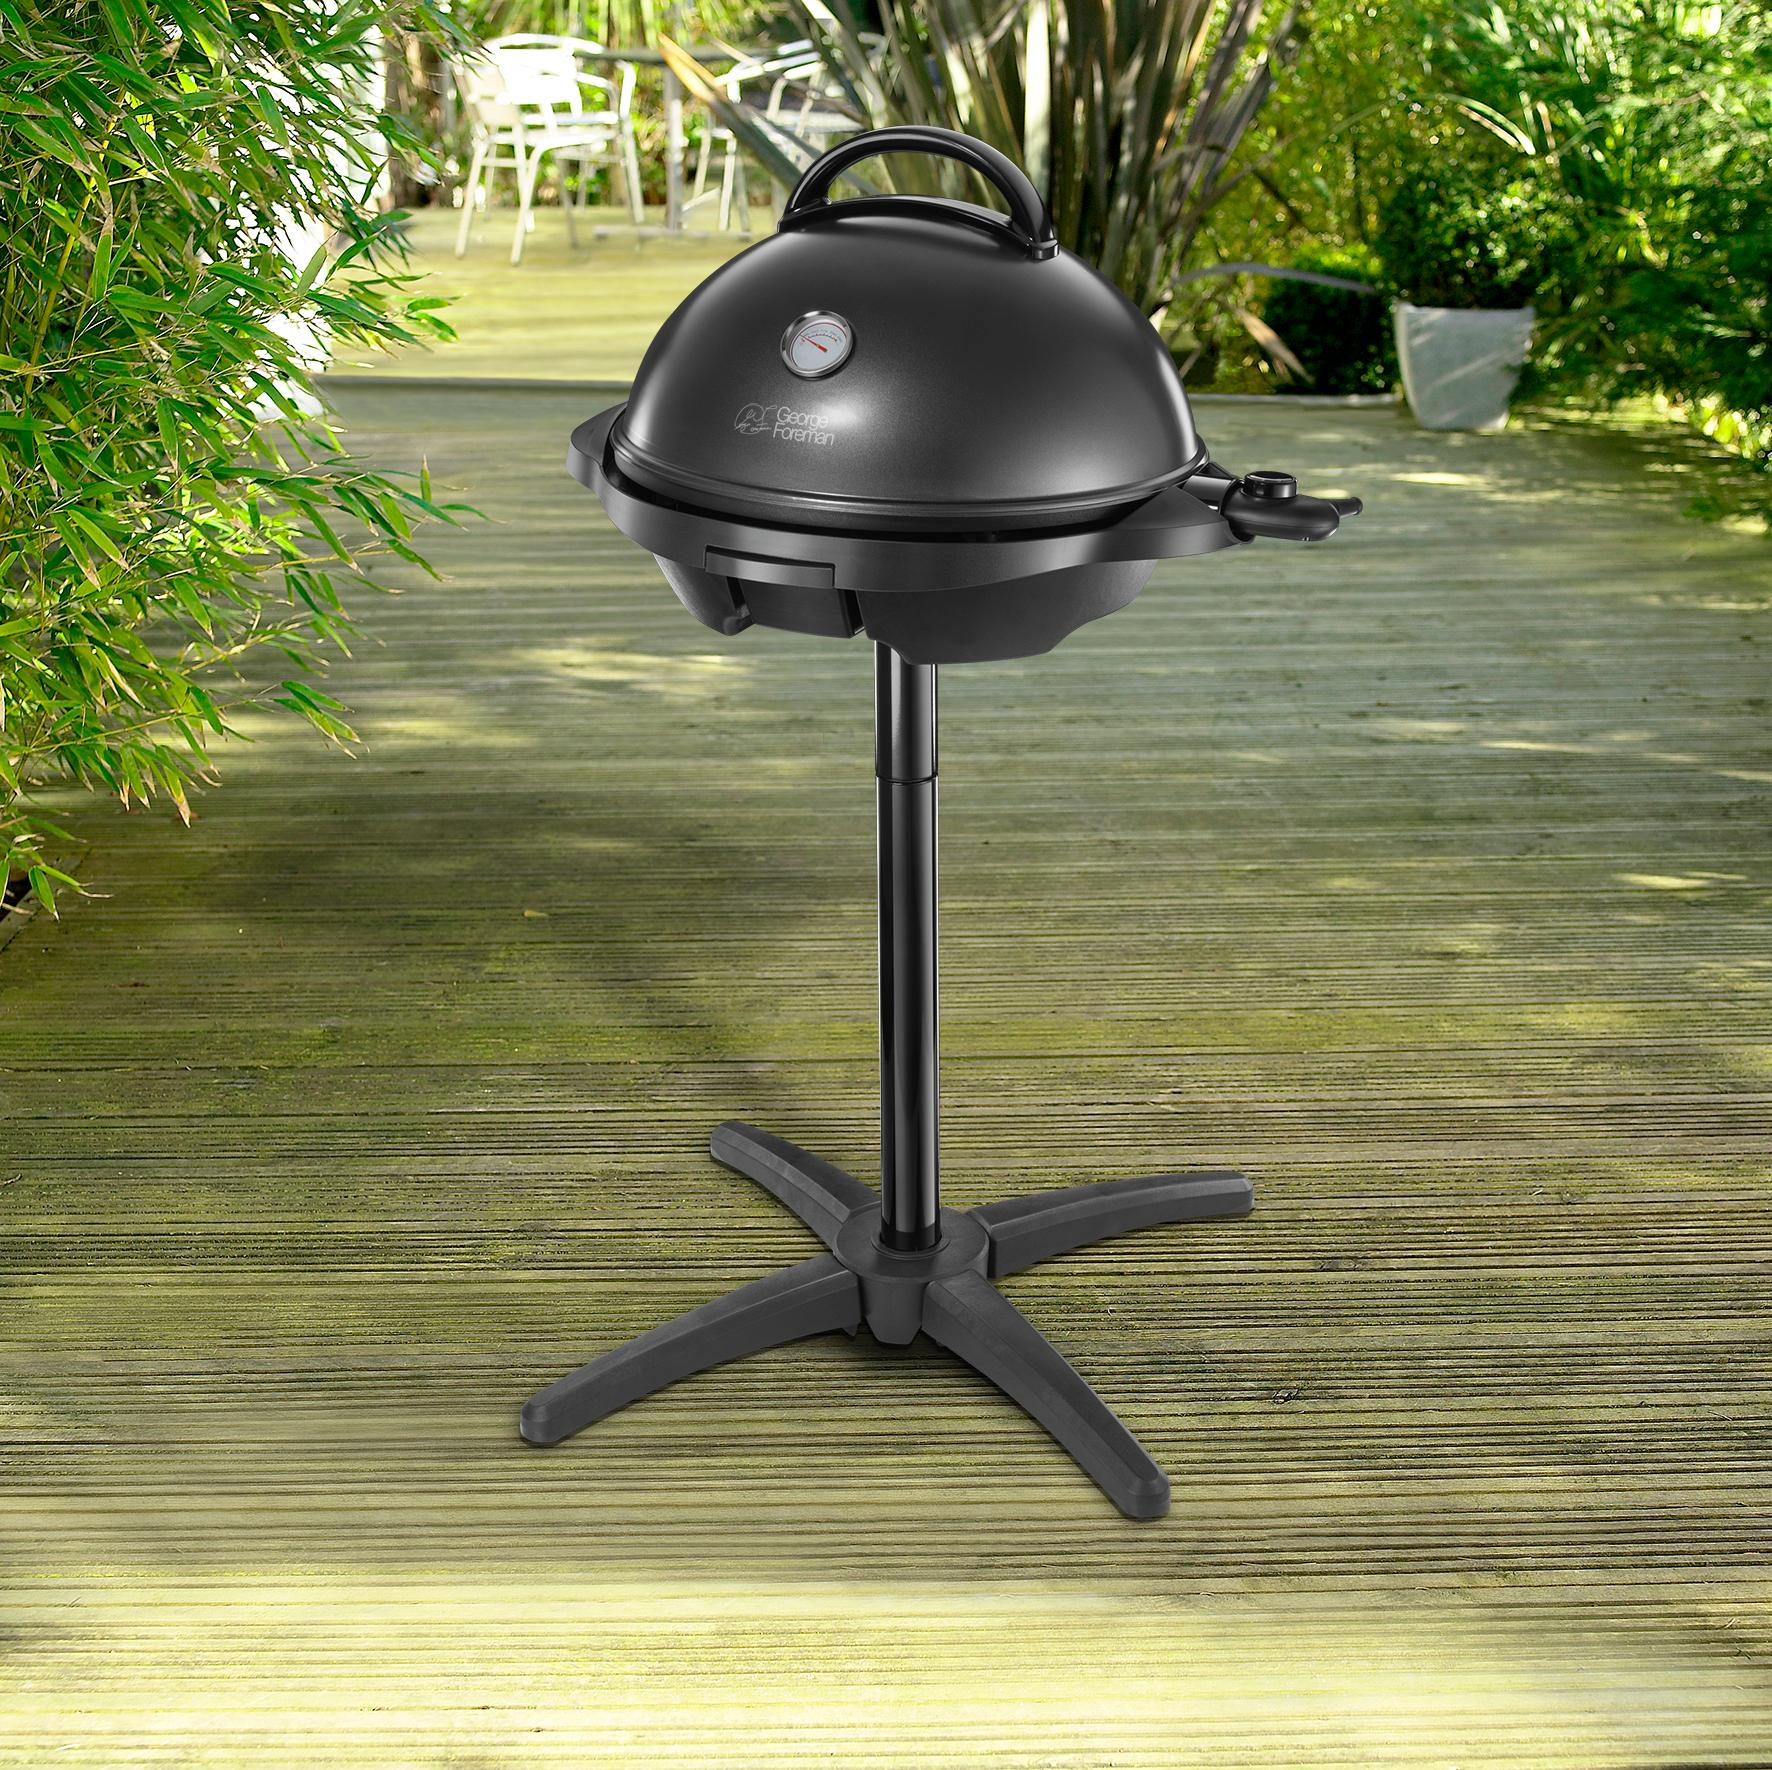 George foreman 22460 indoor and outdoor electric bbq grill for George foreman grill fish